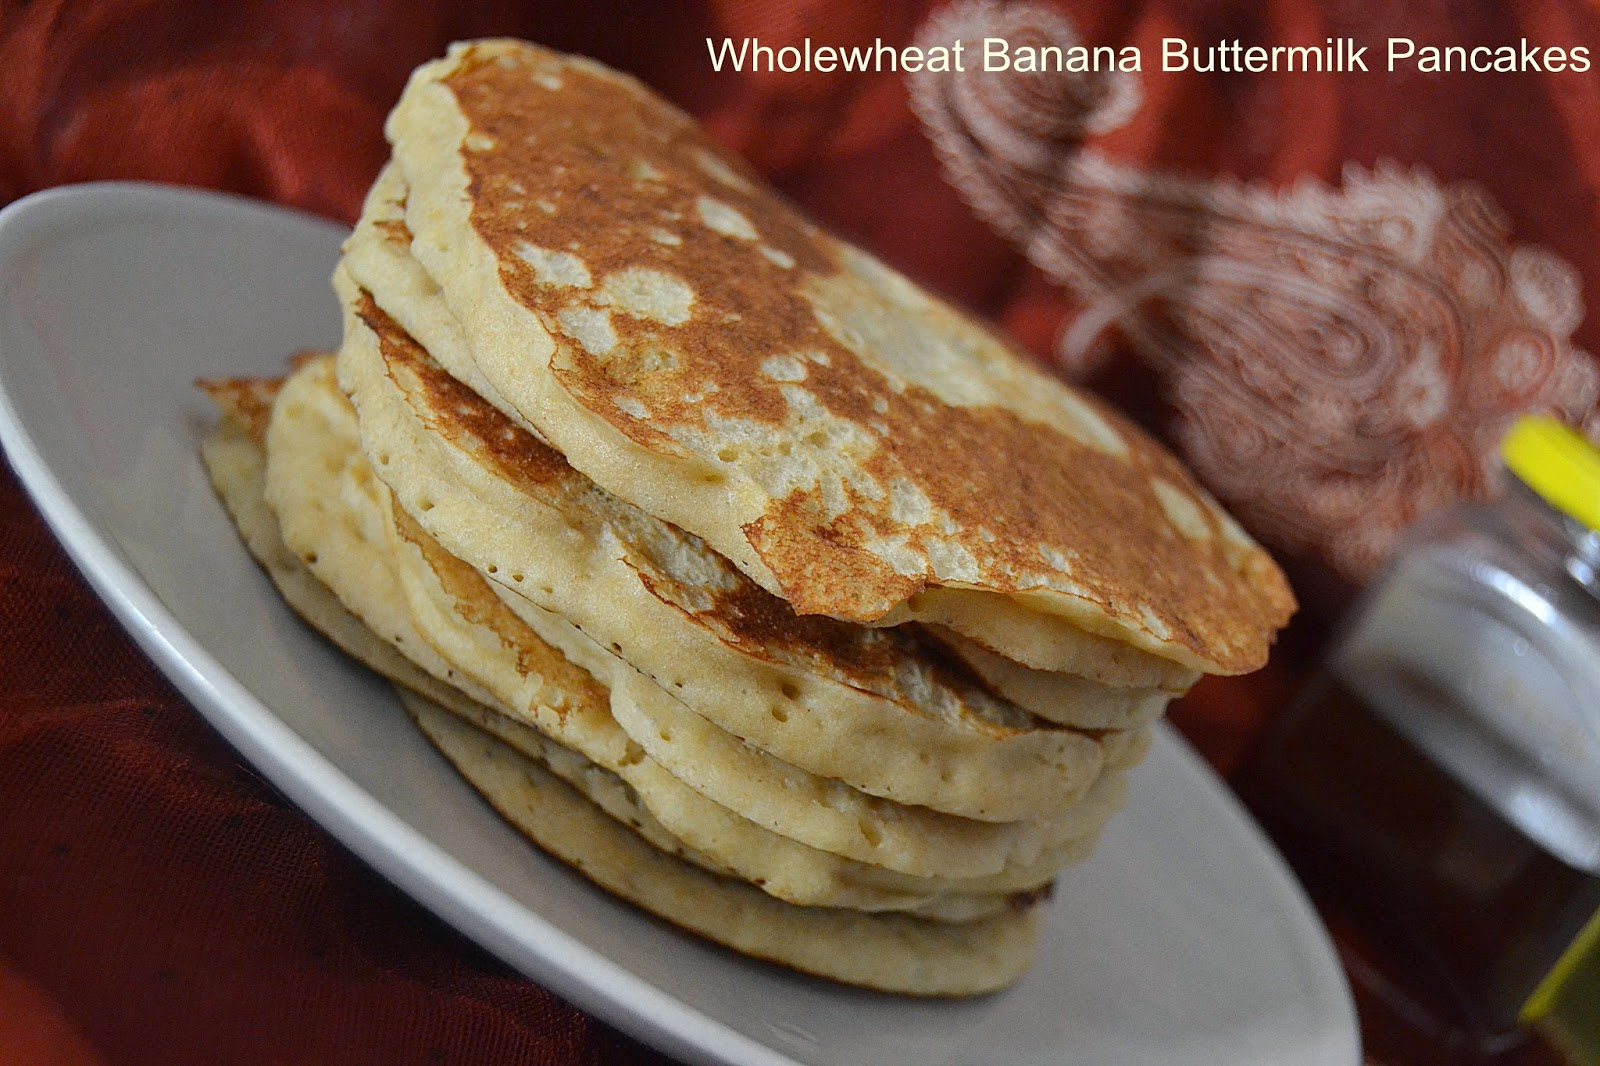 The Big Sweet Tooth: Wholewheat Banana Buttermilk Pancakes